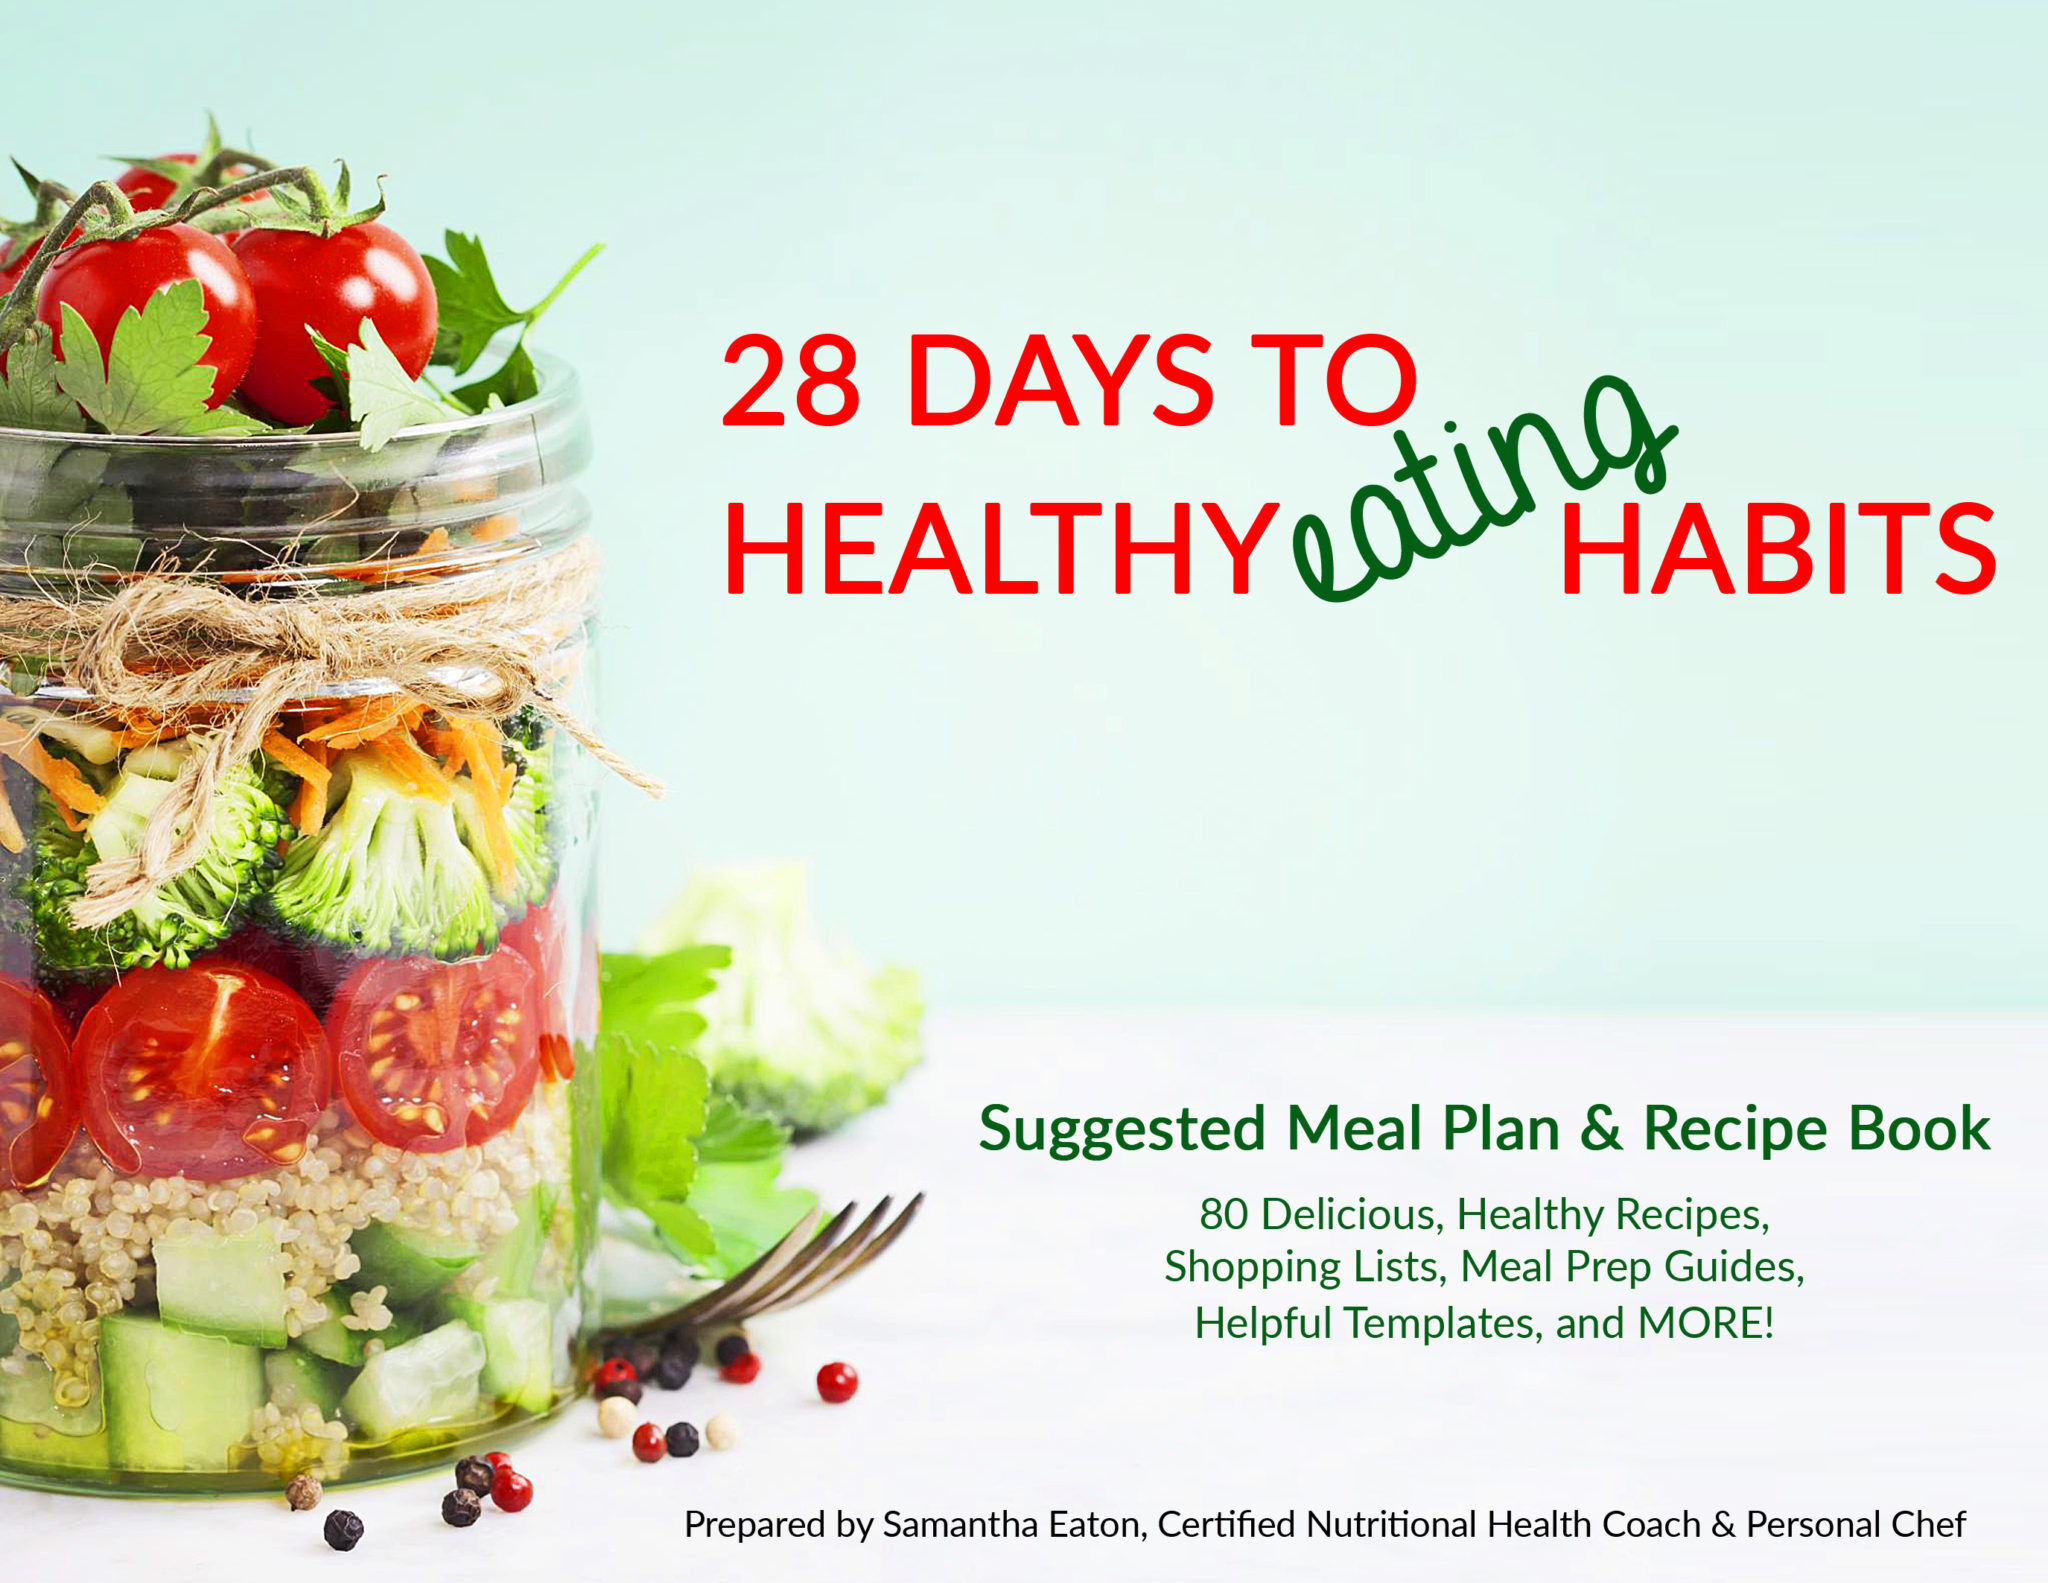 28 days to healthier eating habits, suggested meal plan and recipe book